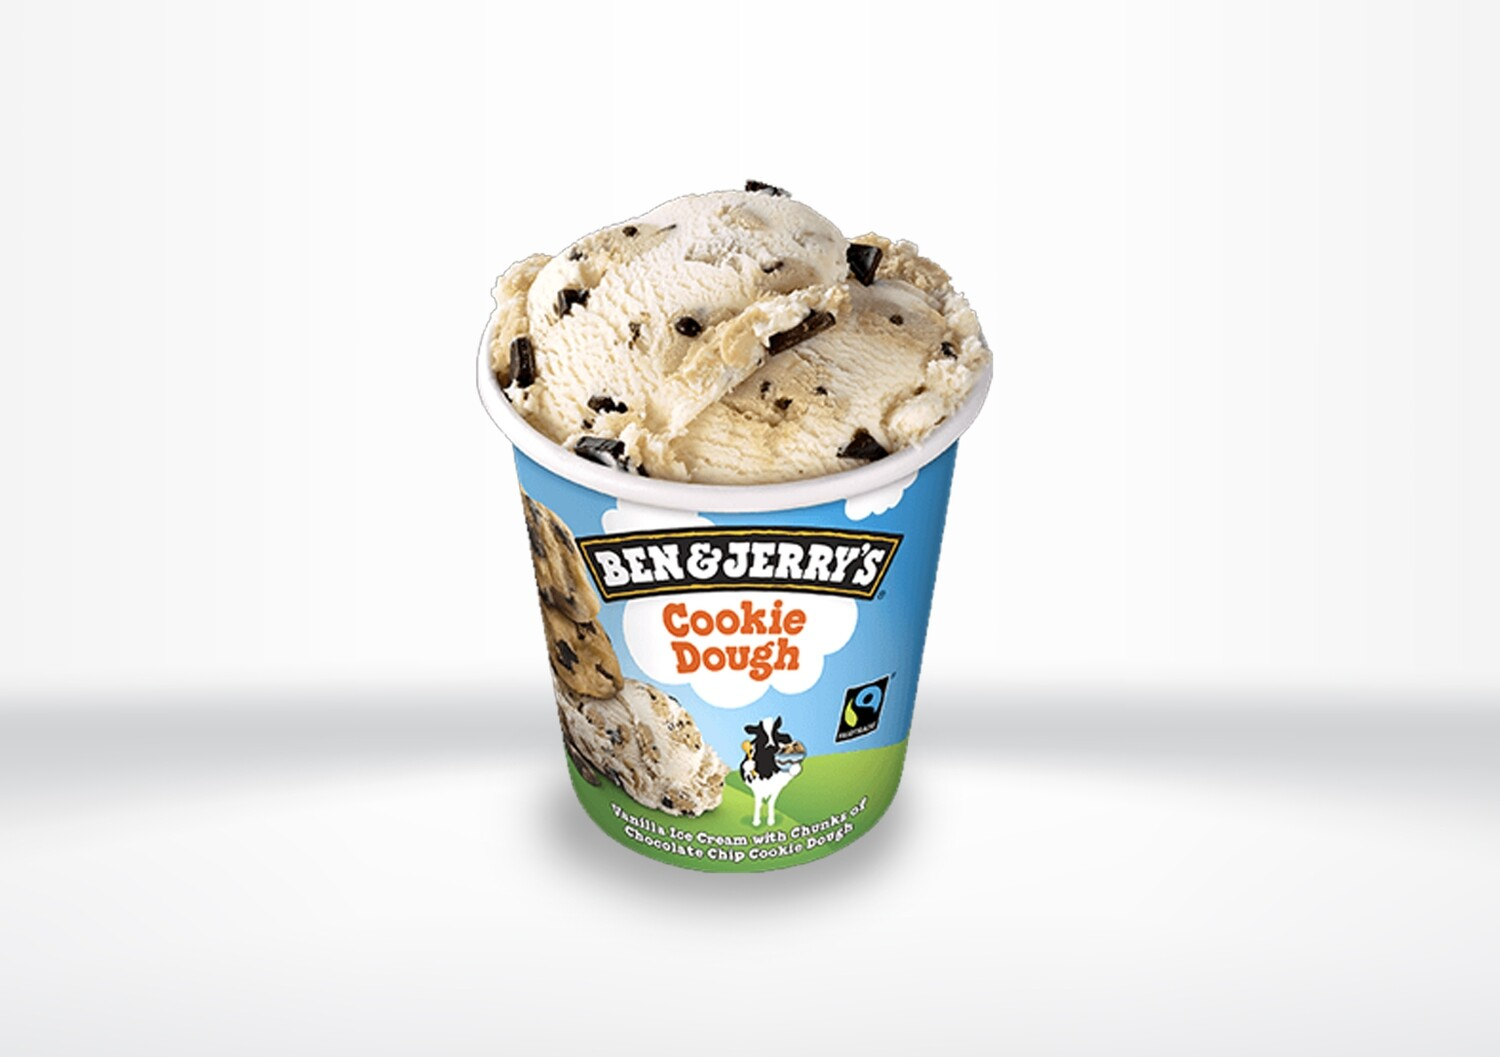 Ben & Jerrys - Cookie Dough - CALL FOR LATEST PROMOTIONS